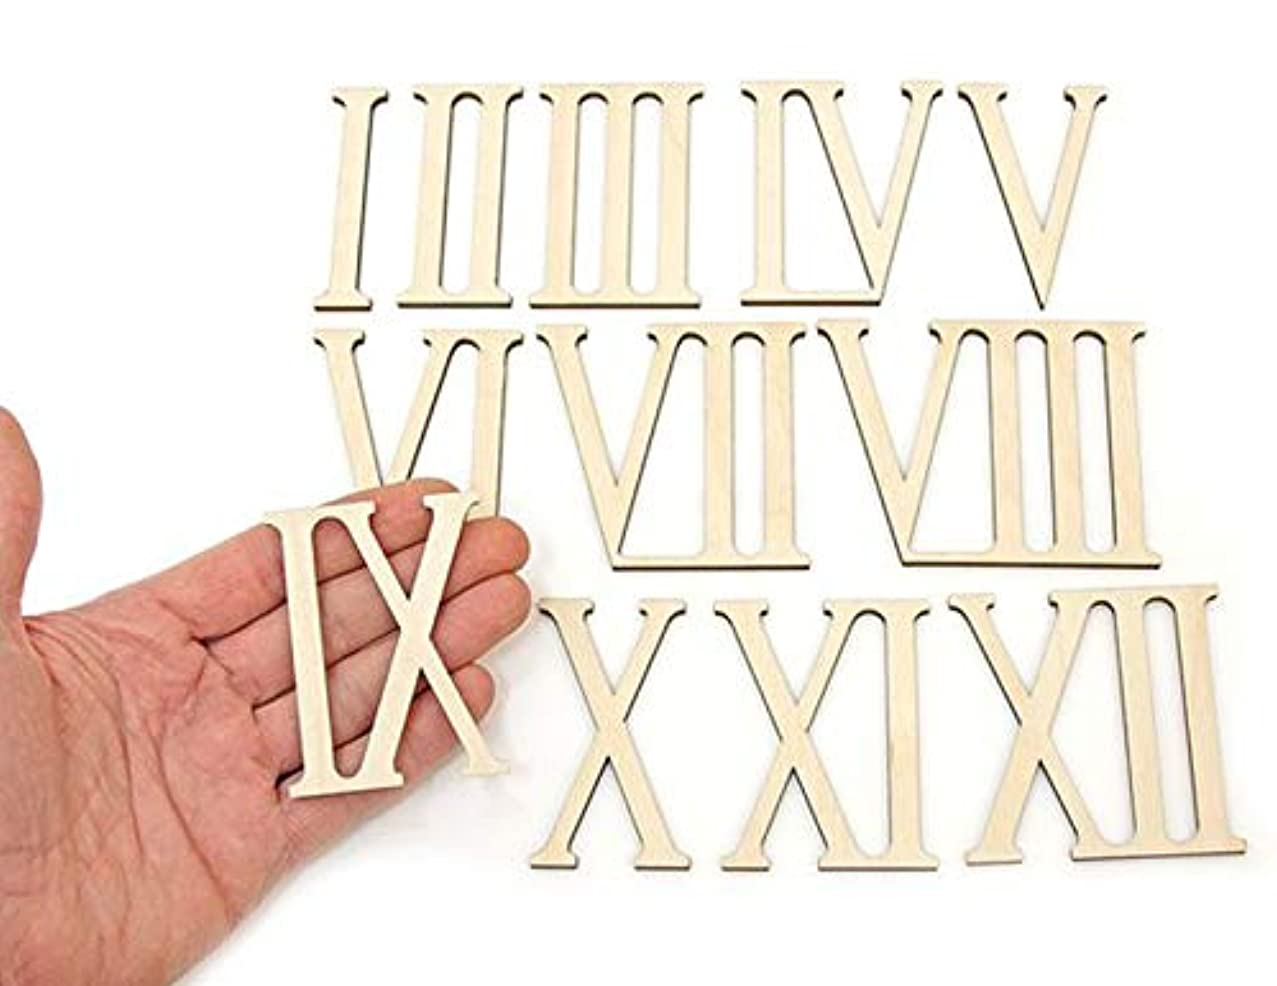 12pcs Wooden Roman Numerals Shape Wood Numerics Numbers Ornaments Craft Decoration (7cm high)